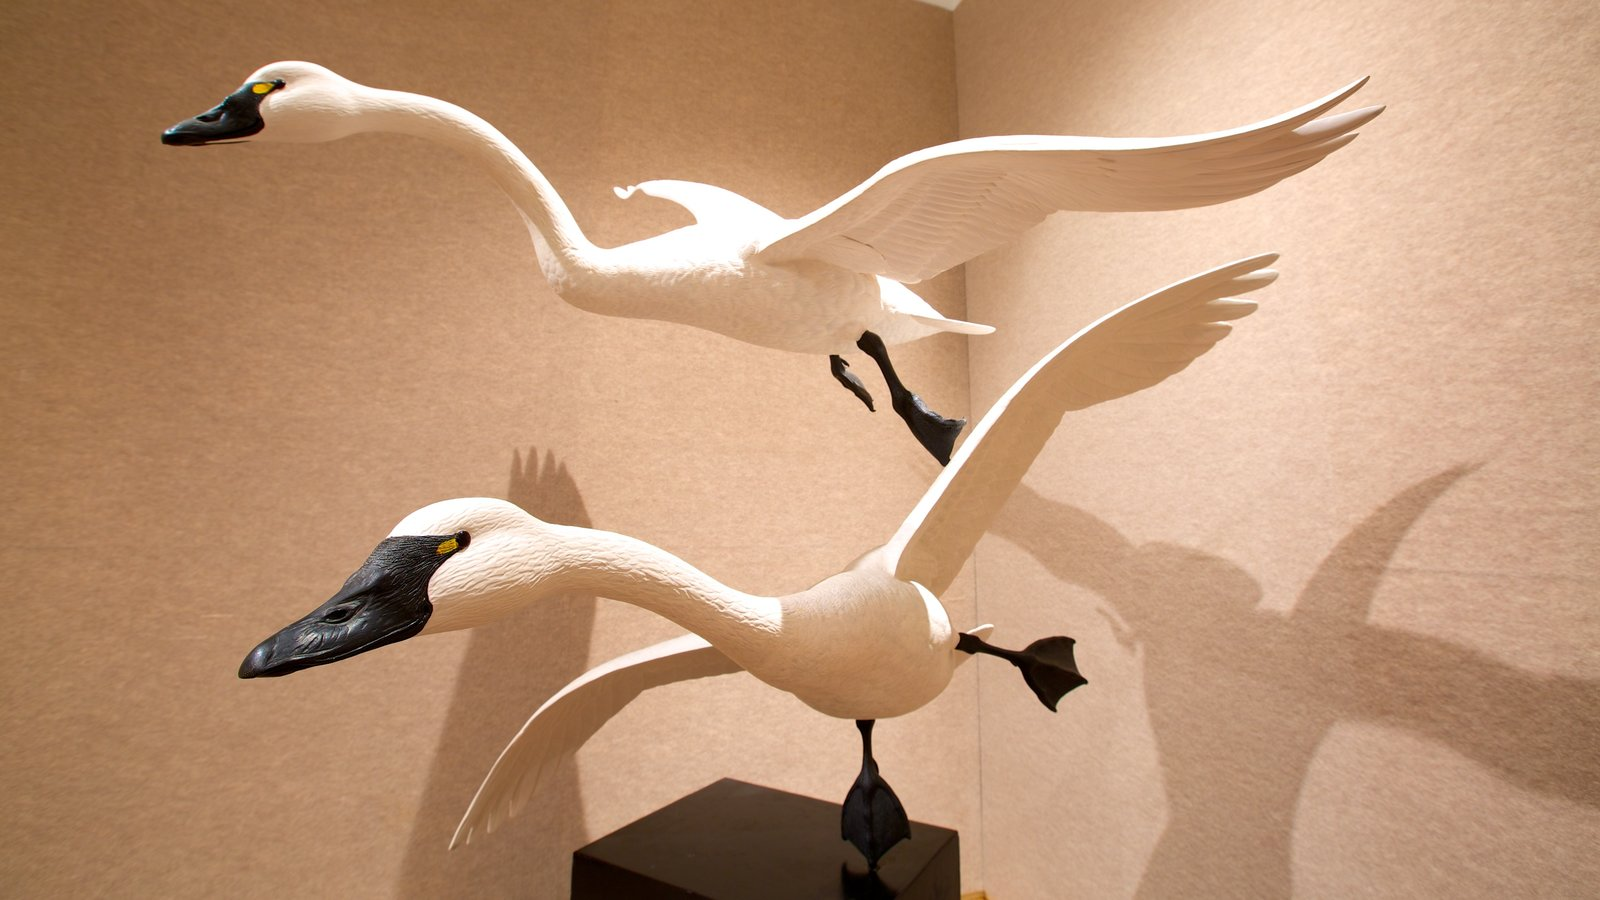 Ward Museum of Wildfowl Art which includes interior views, bird life and art